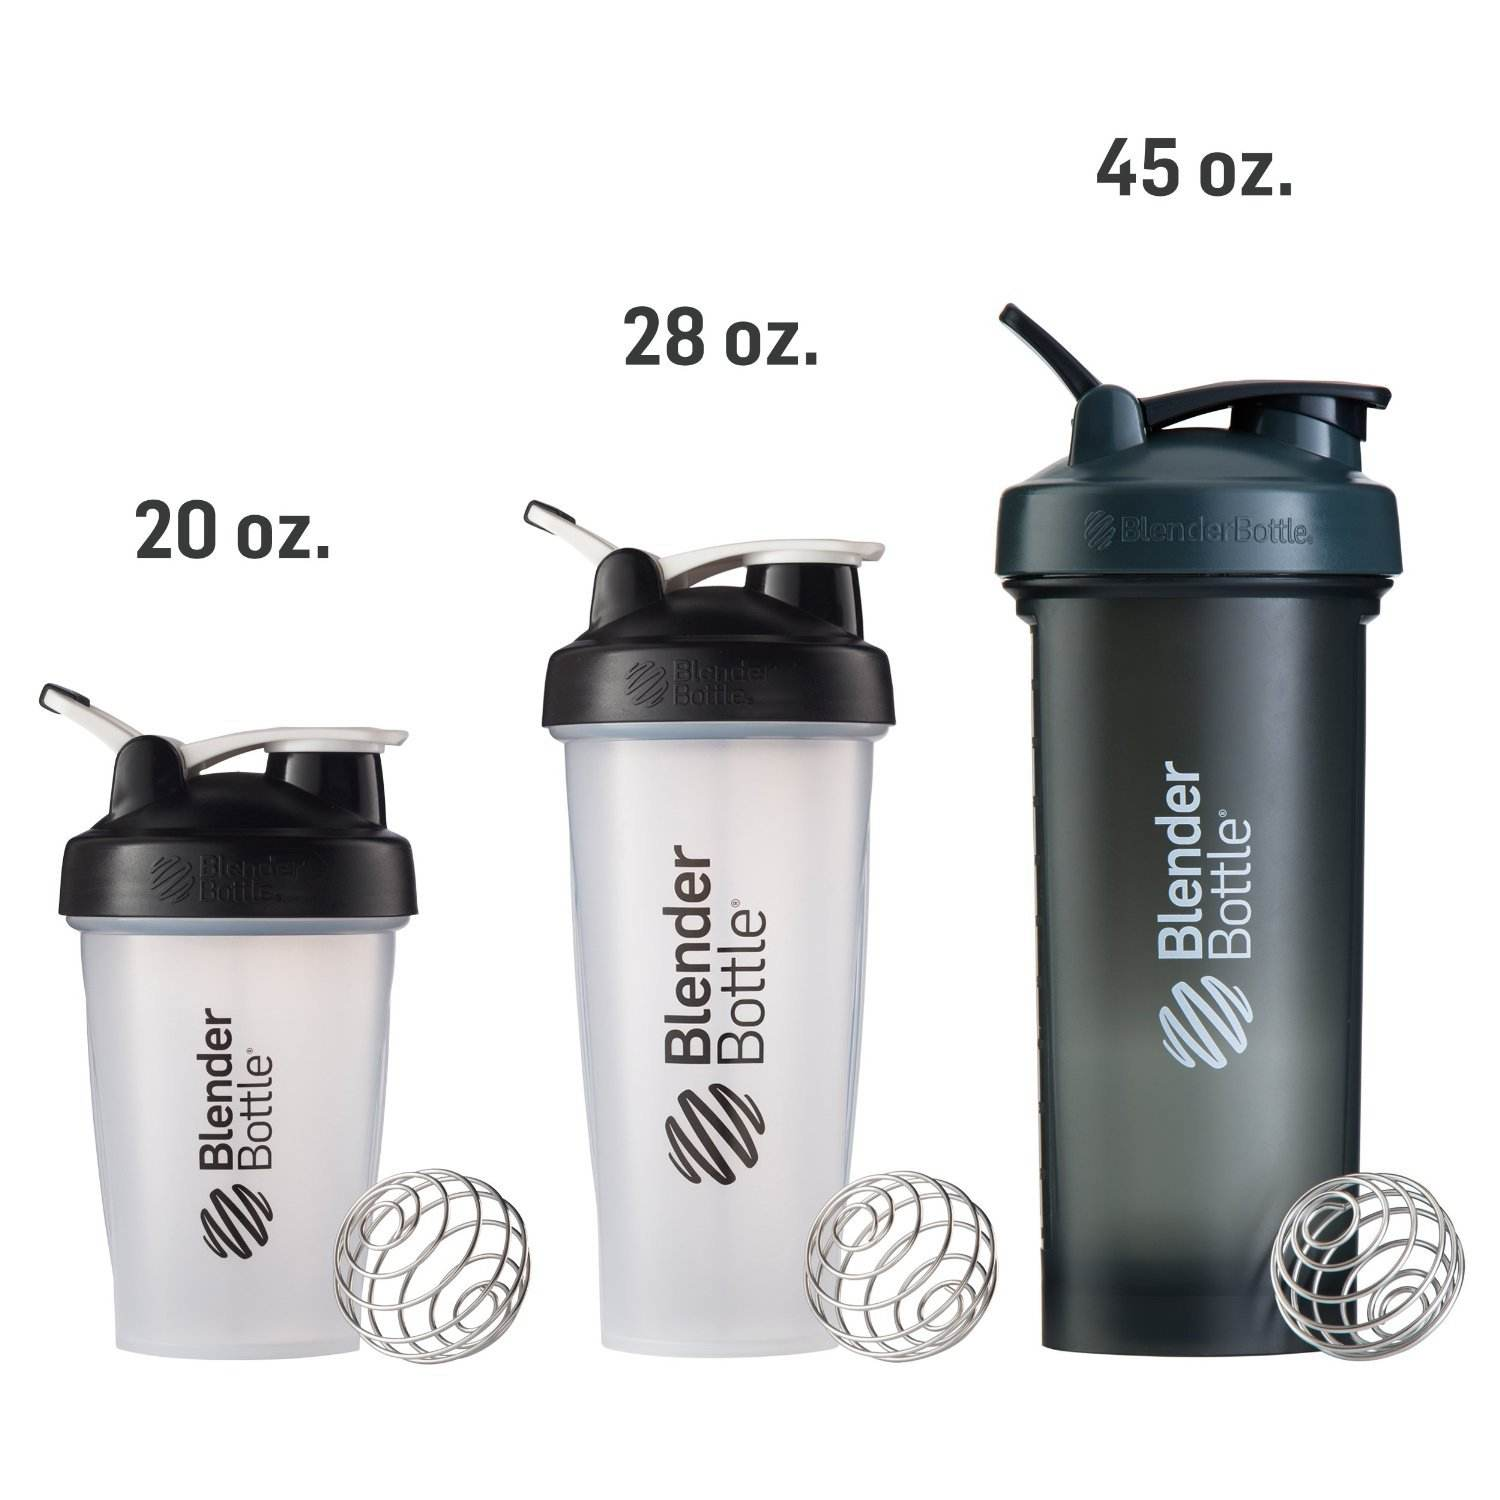 BPA free sport custom logo design protein shaker with mixer ball water bottle shaker bottle for gym outdoor